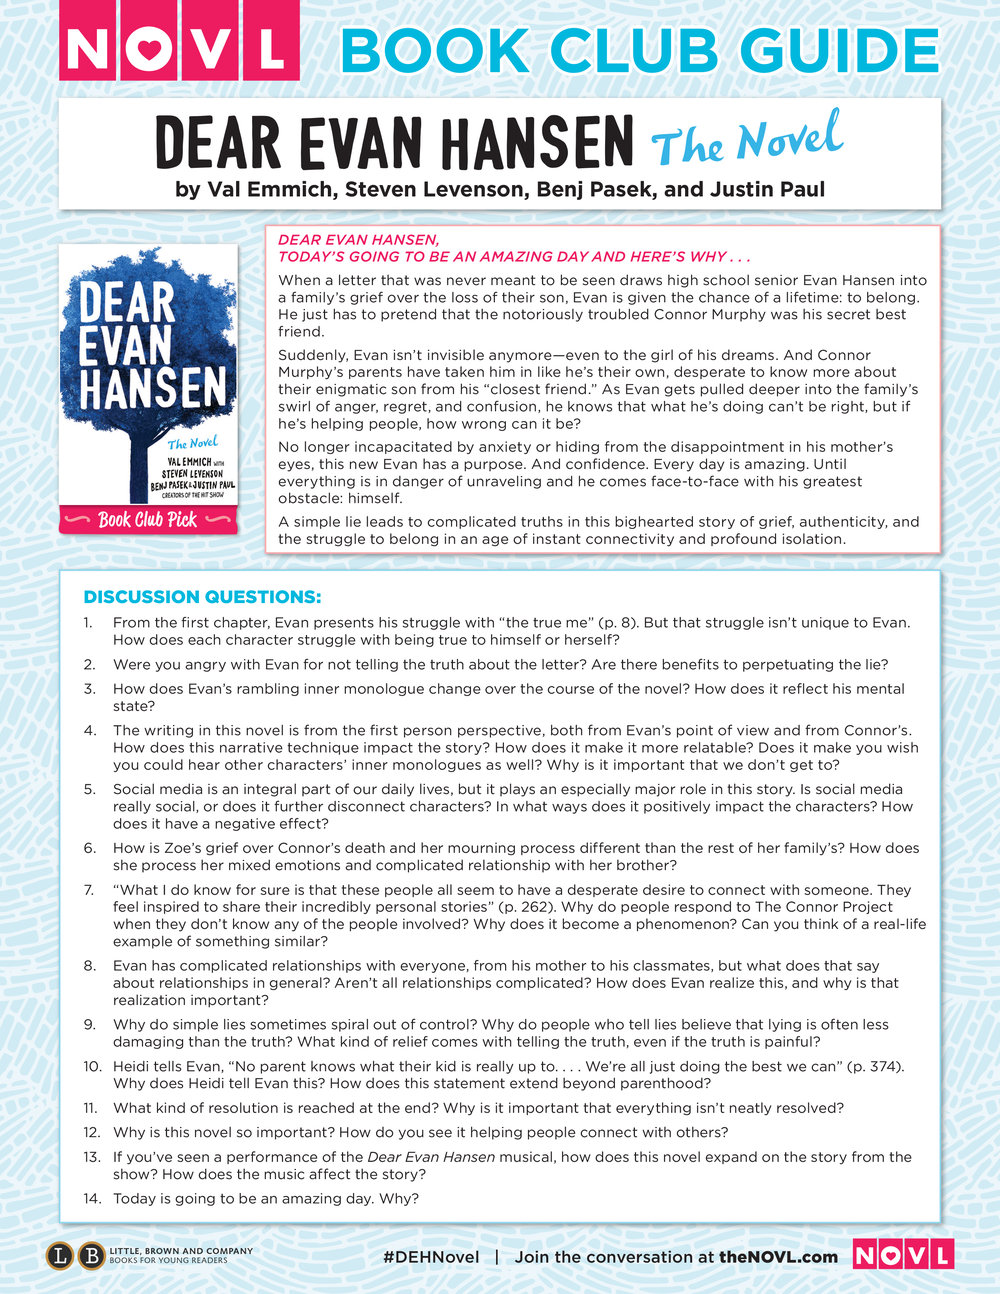 Dear Evan Hansen book club guide